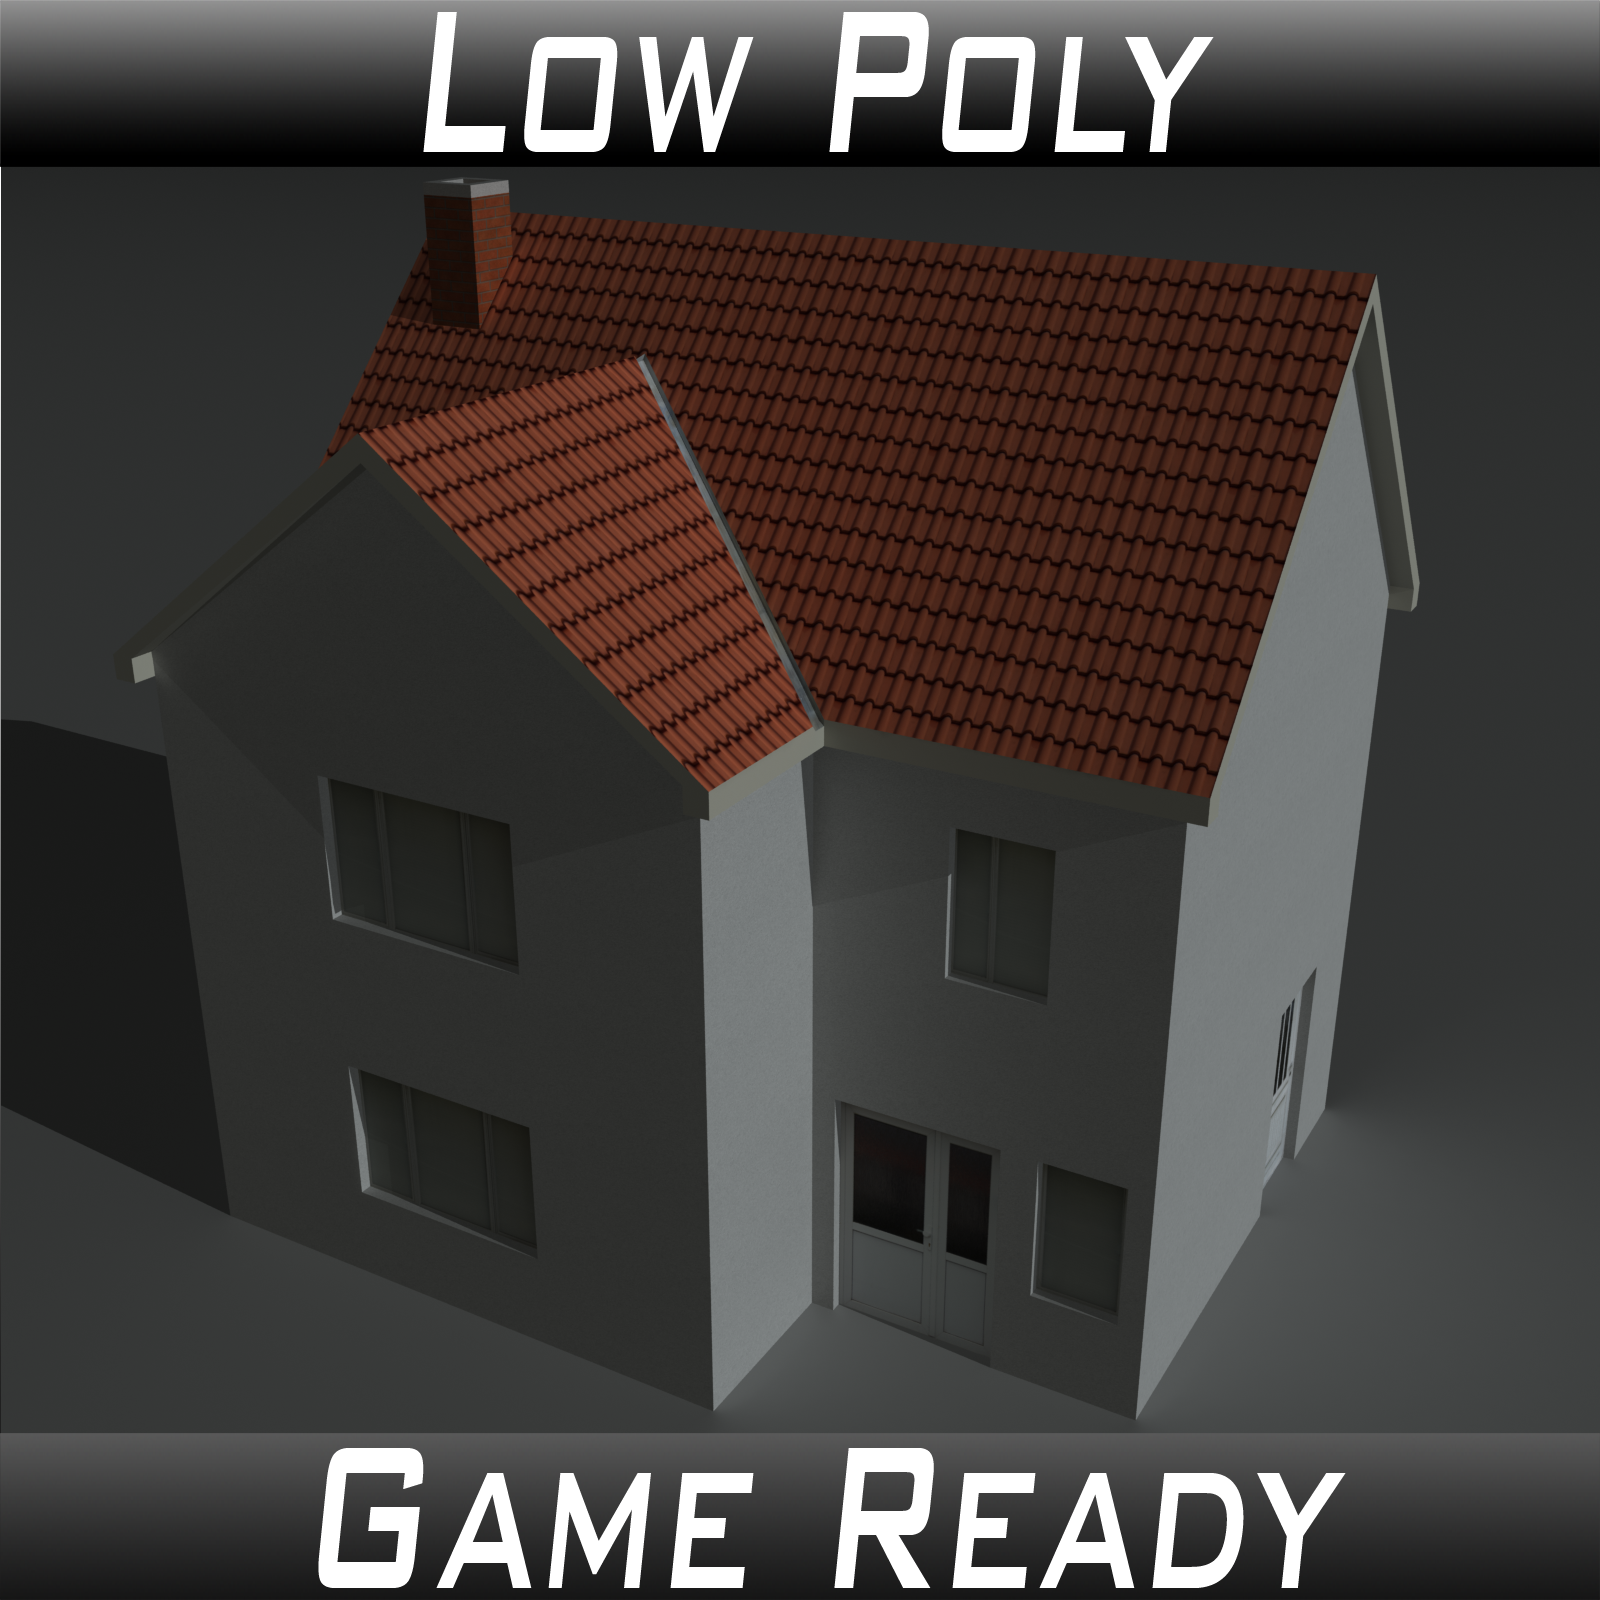 Low Poly House 1 - Extended License by 3dlands